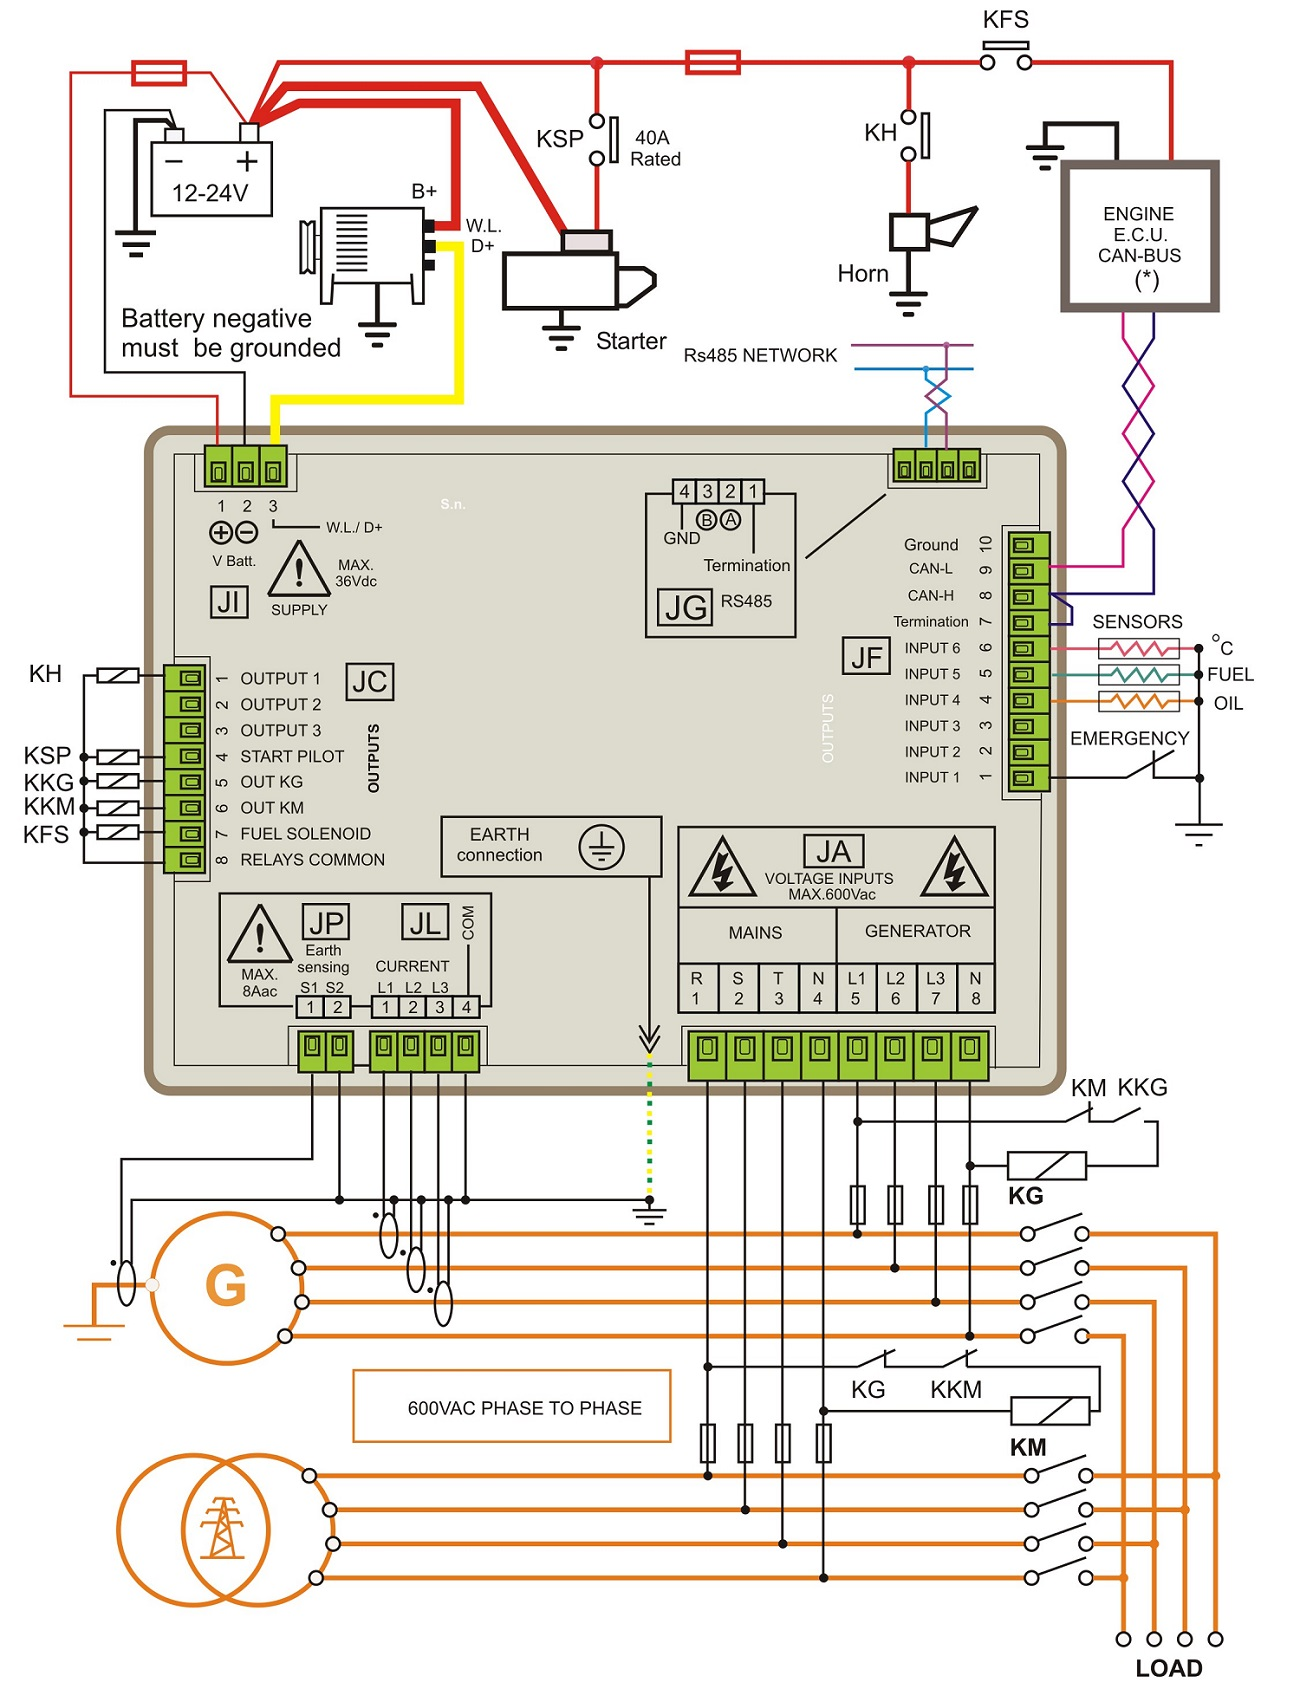 Generator control panel for industrial applications diagram 12 wire generator connections wiring diagram simonand wiring diagram freeware at gsmx.co